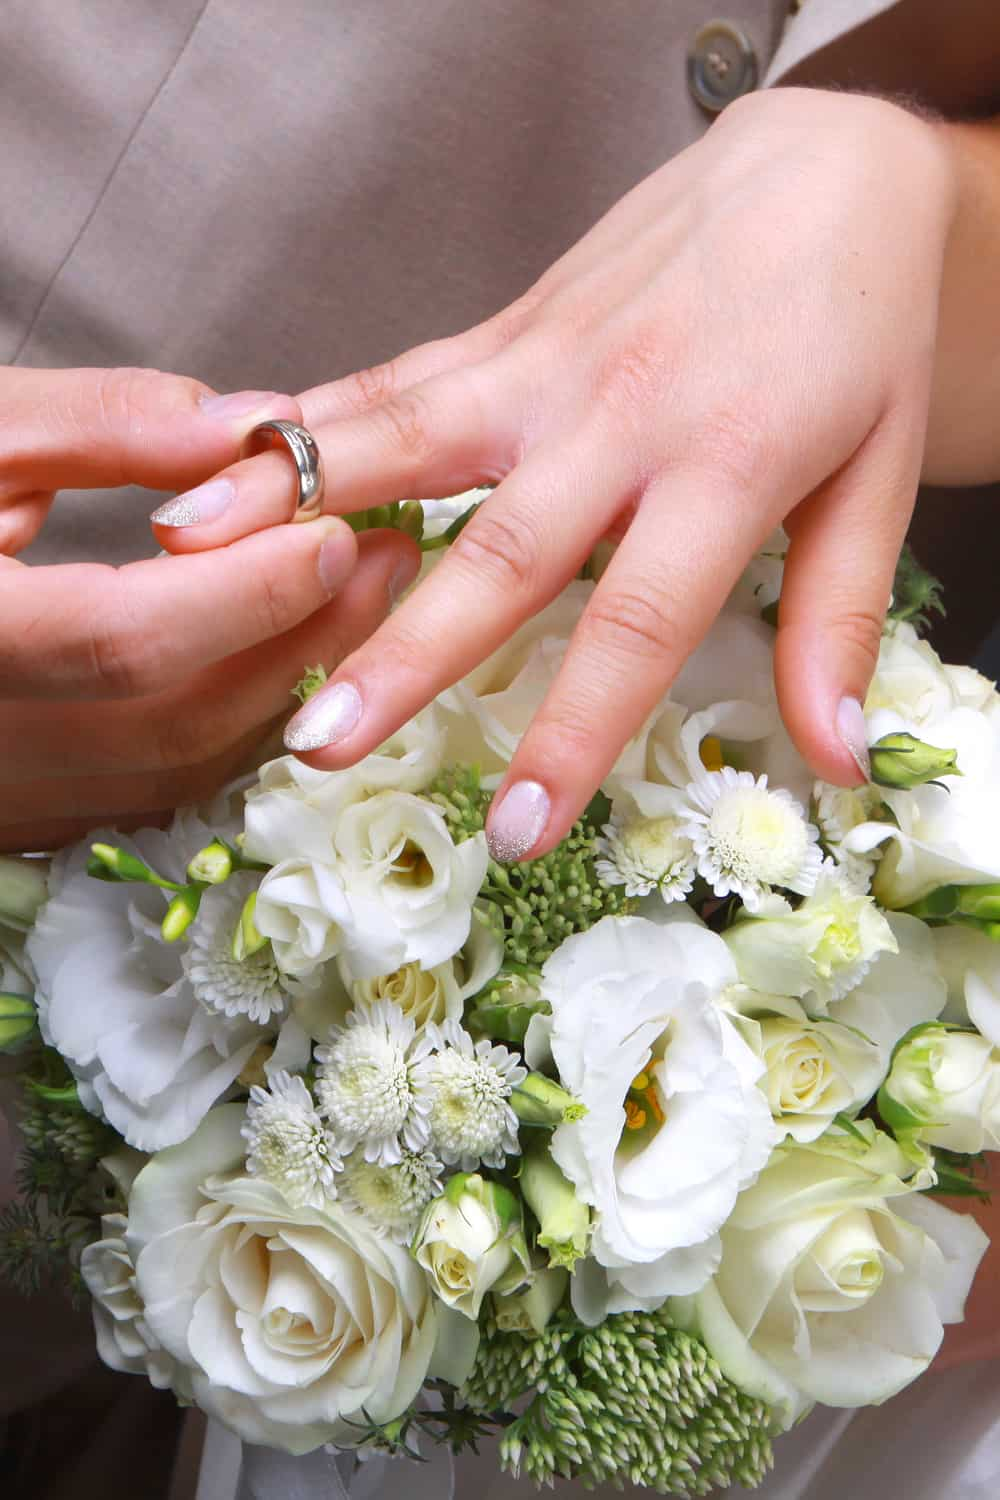 Wedding Ring Customs in Different Cultures